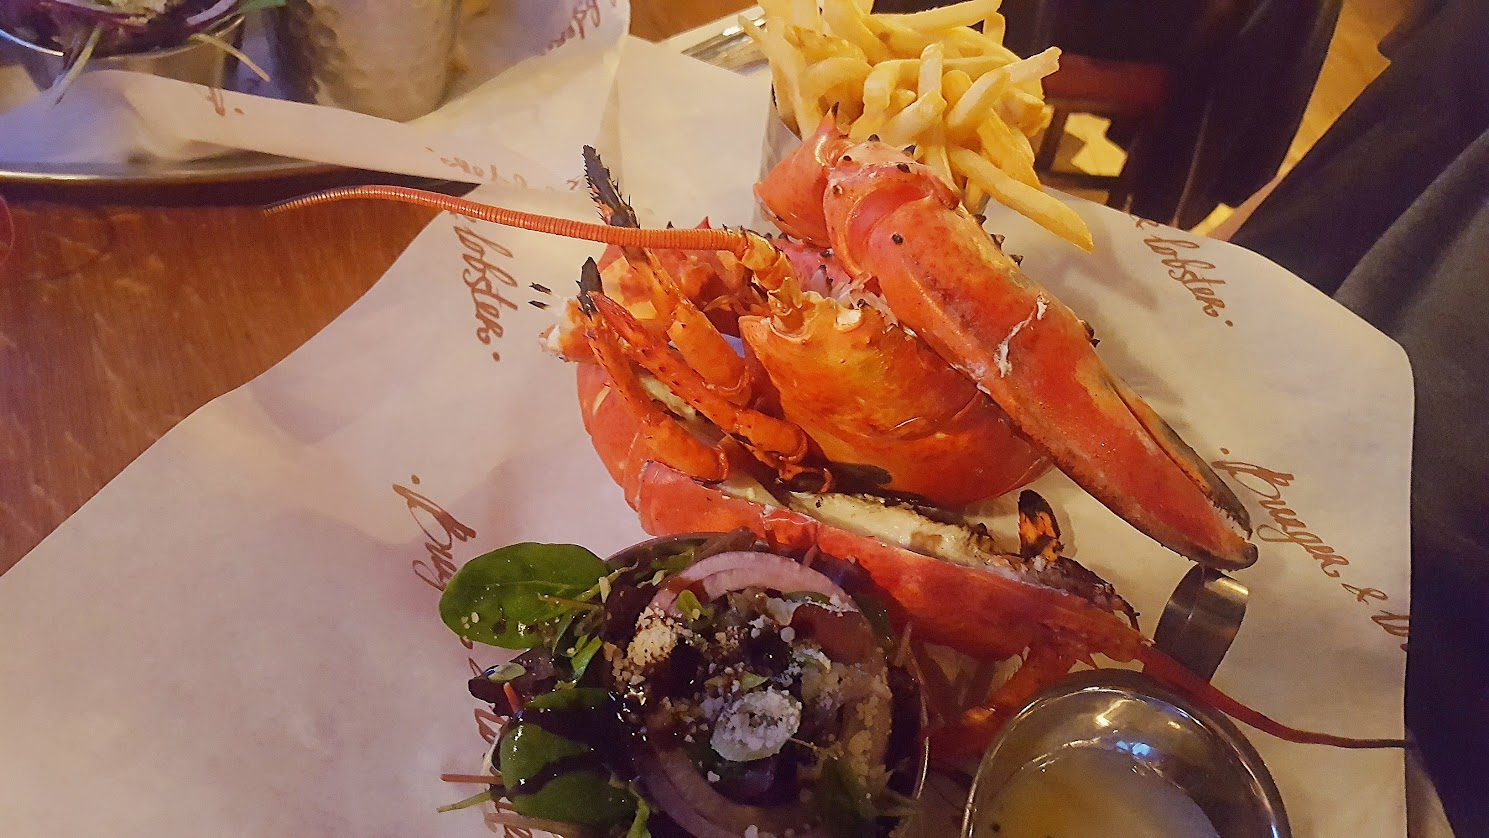 The £40 Lobster